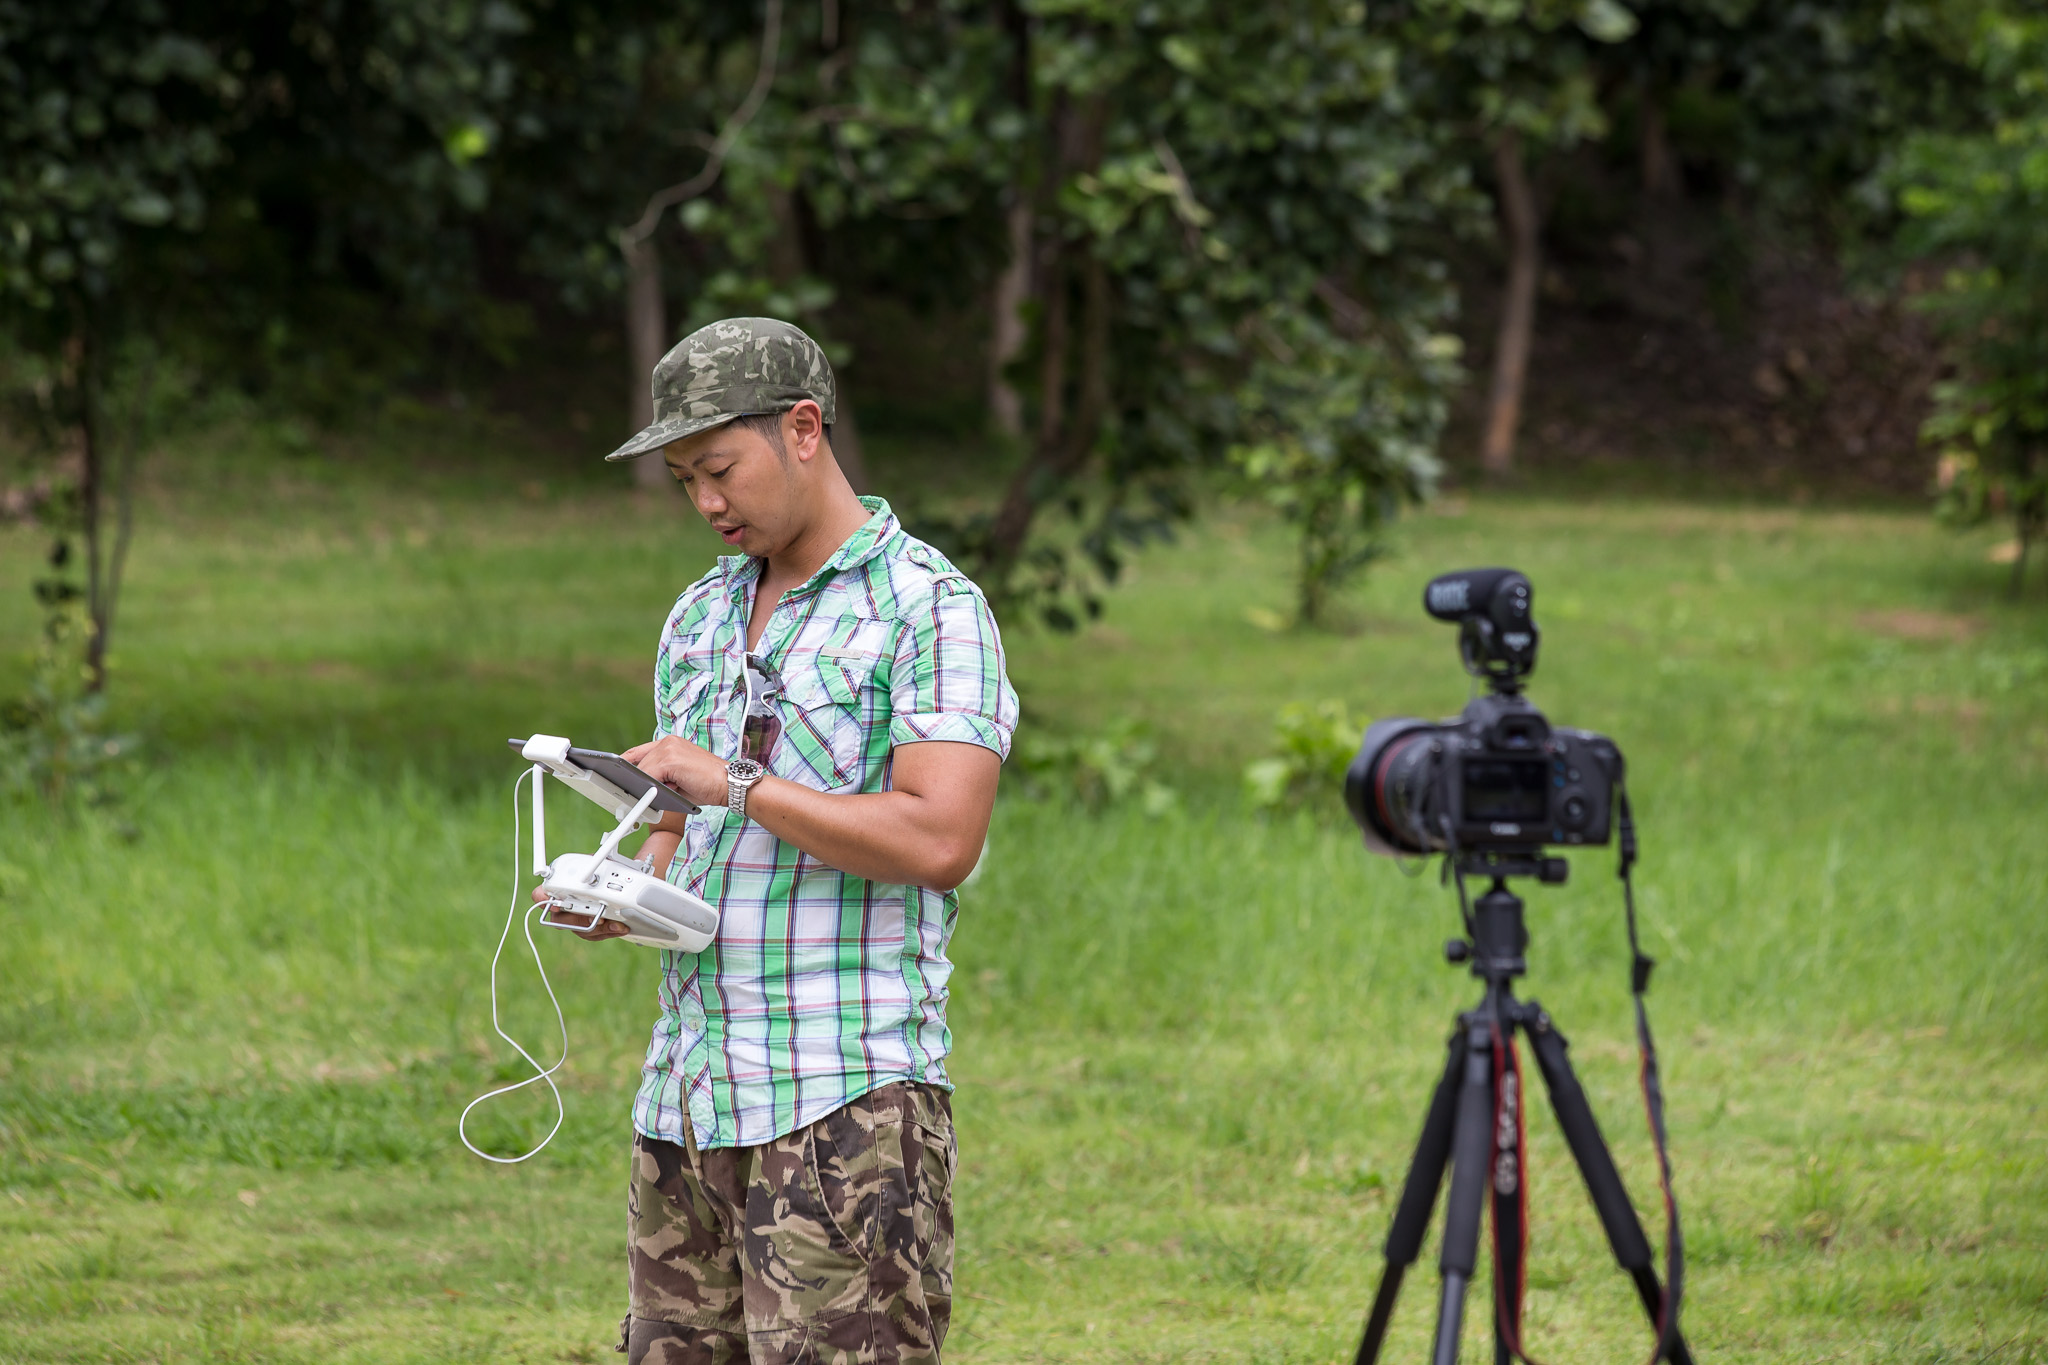 Thialand videographer